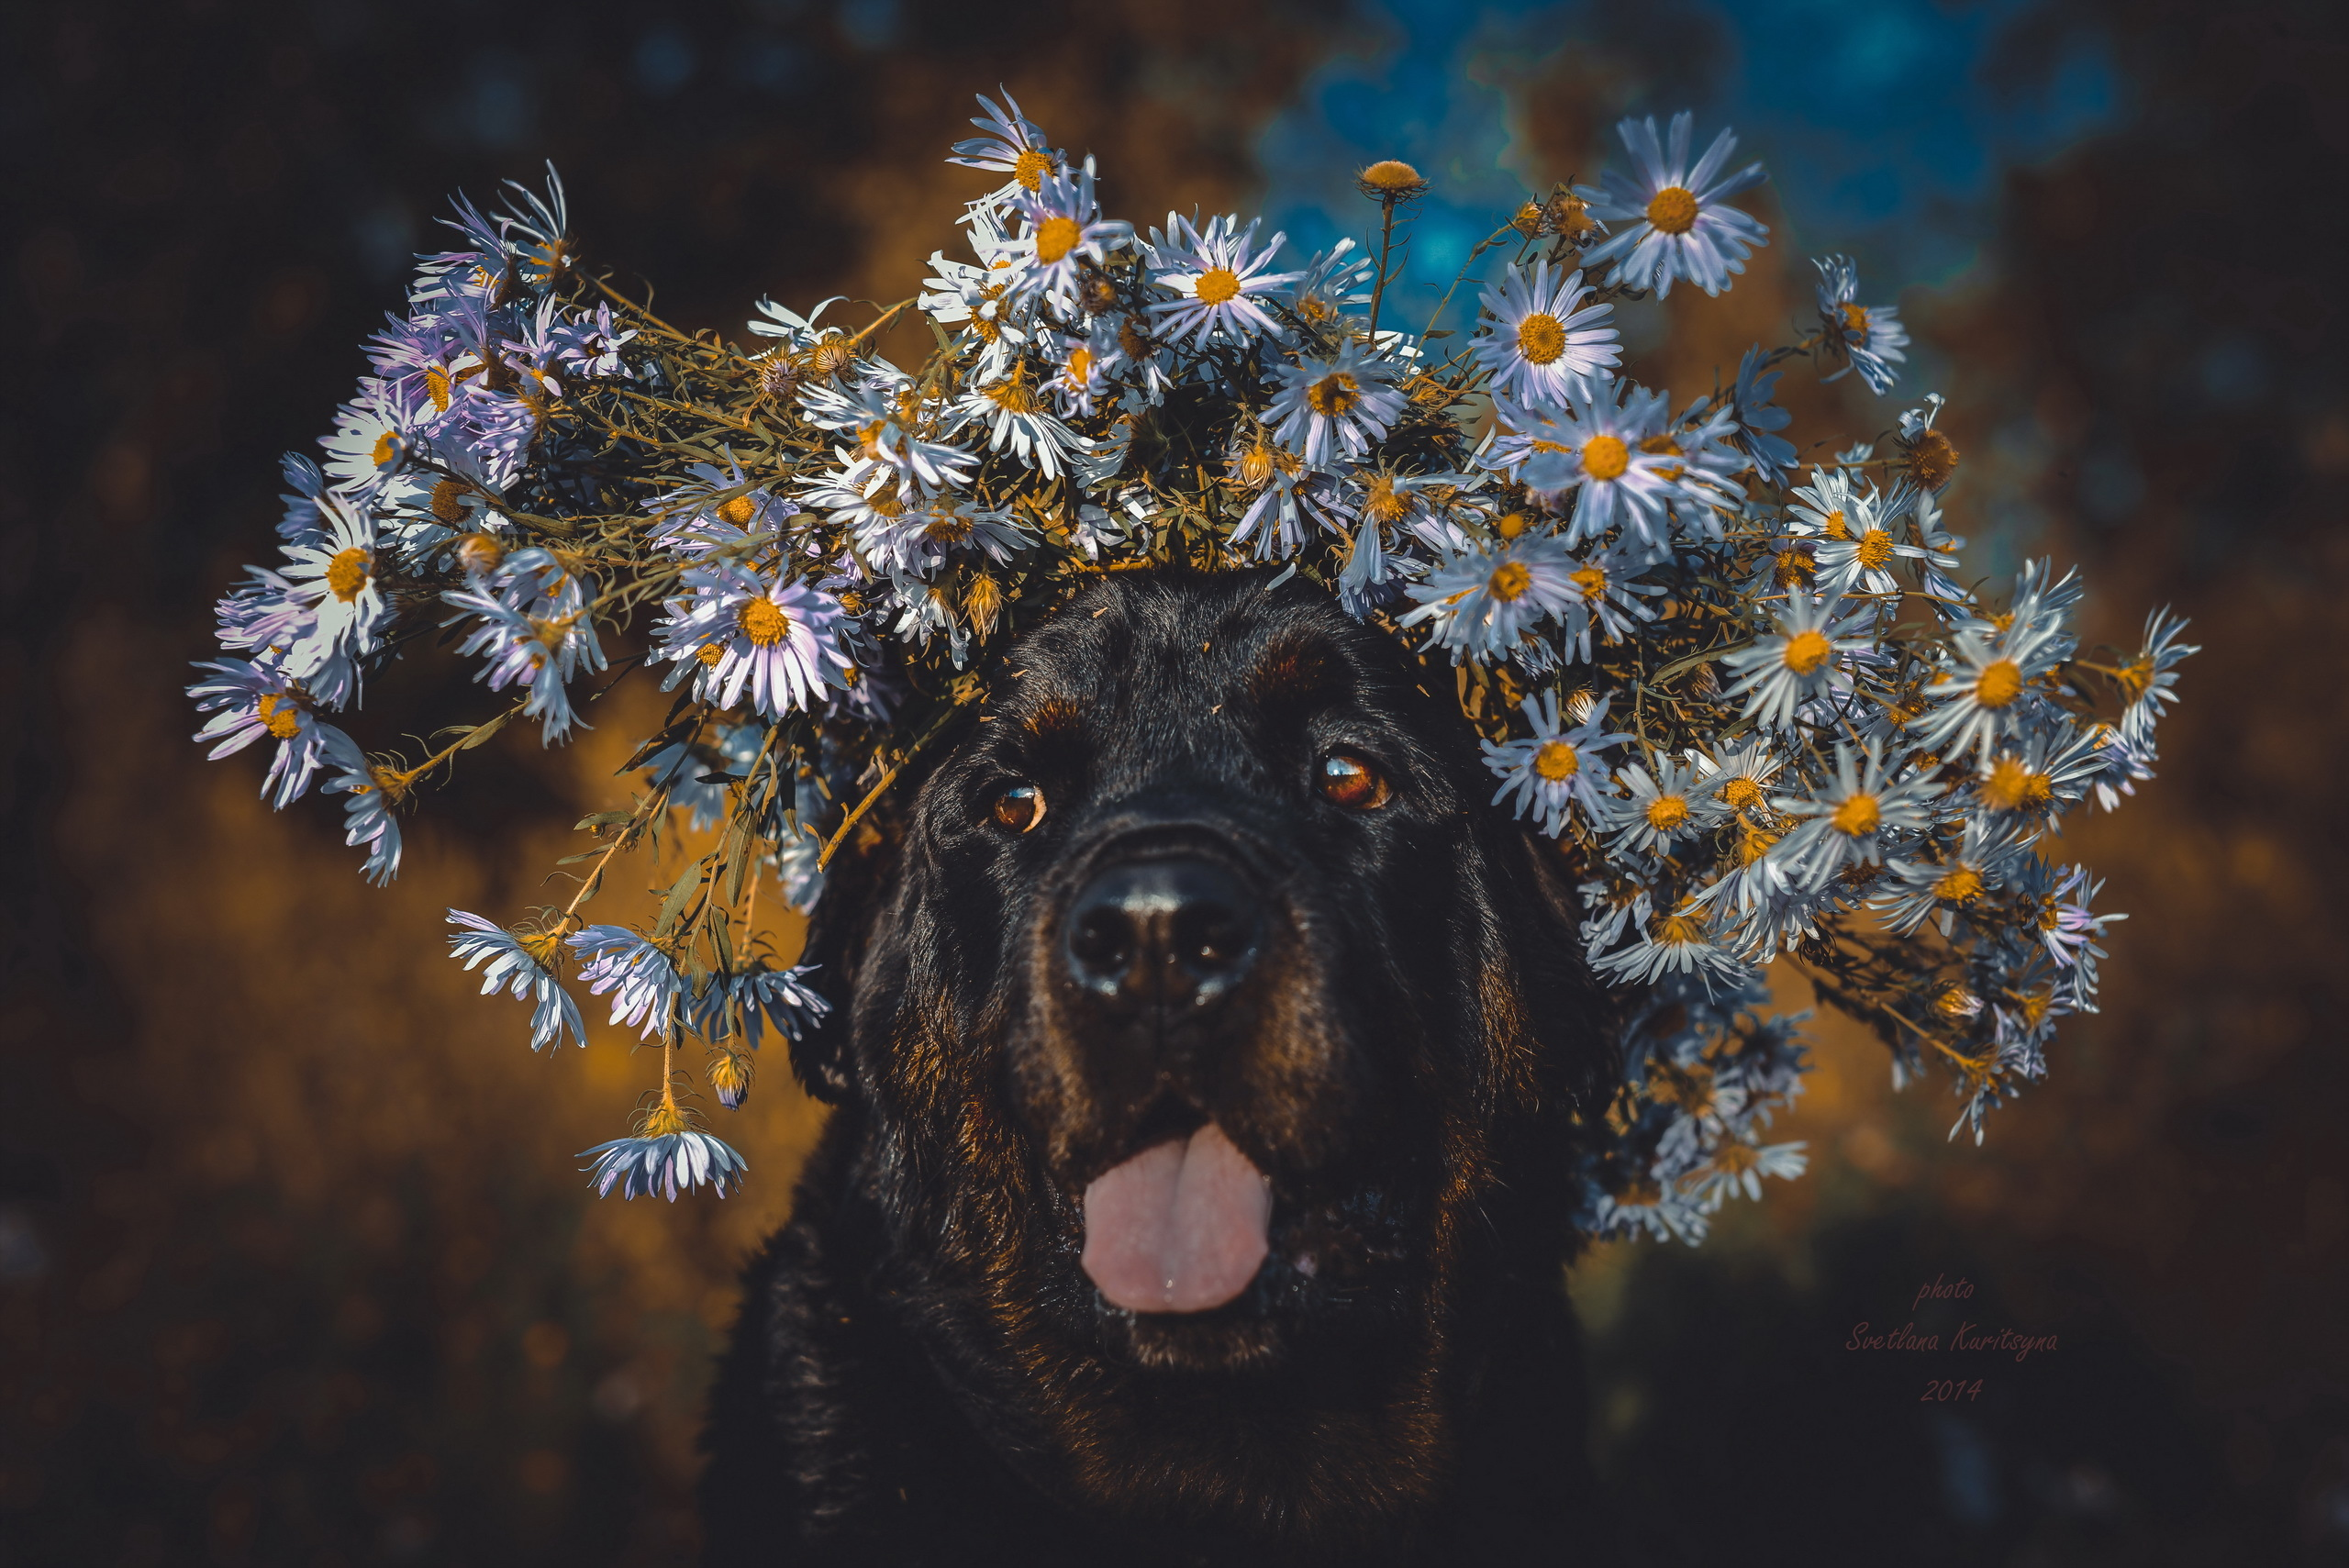 112765 download wallpaper Animals, Dog, Protruding Tongue, Tongue Stuck Out, Muzzle, Wreath, Flowers screensavers and pictures for free